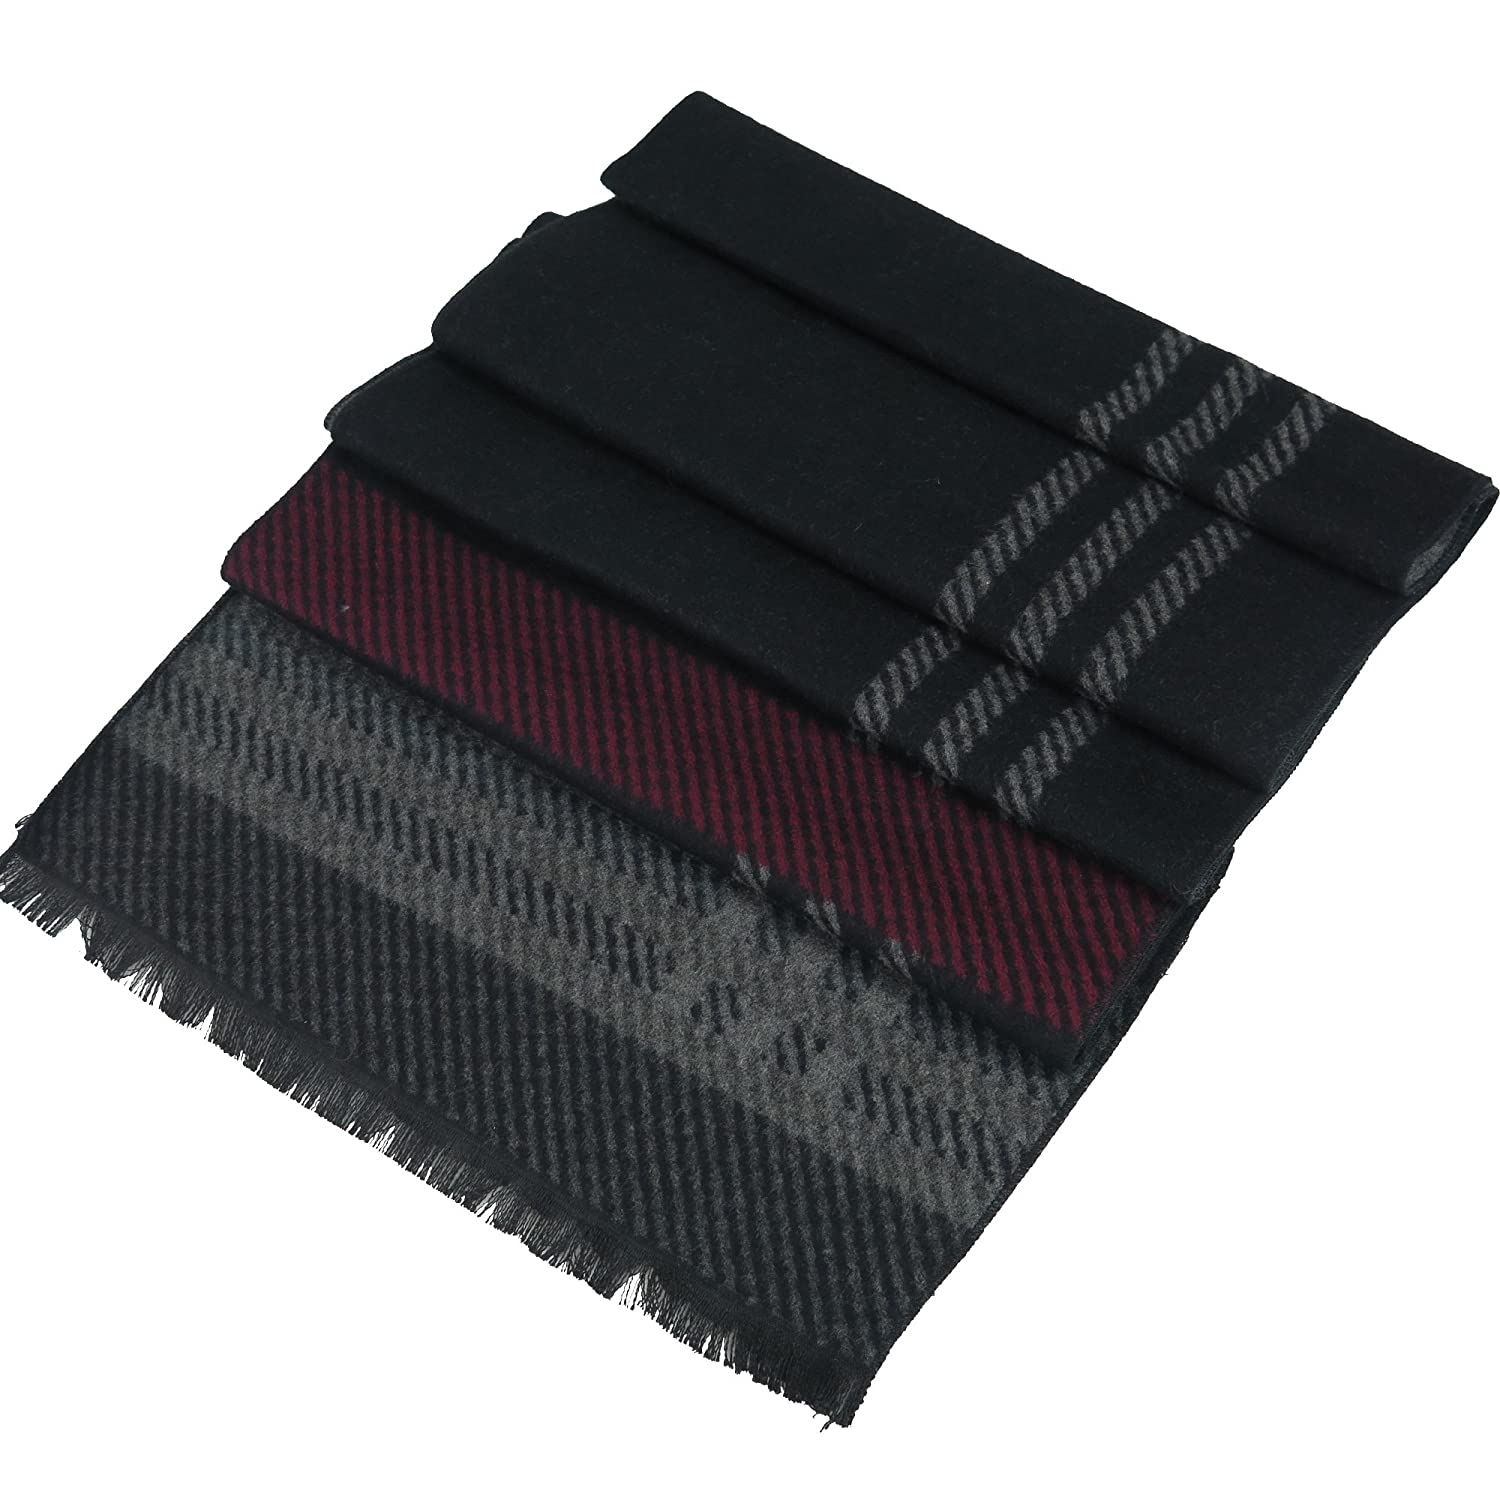 Mens Cashmere-Feel Winter Scarf By Debra Weitzner 100/% Cotton Soft And Warm Accessory In 6 Prints